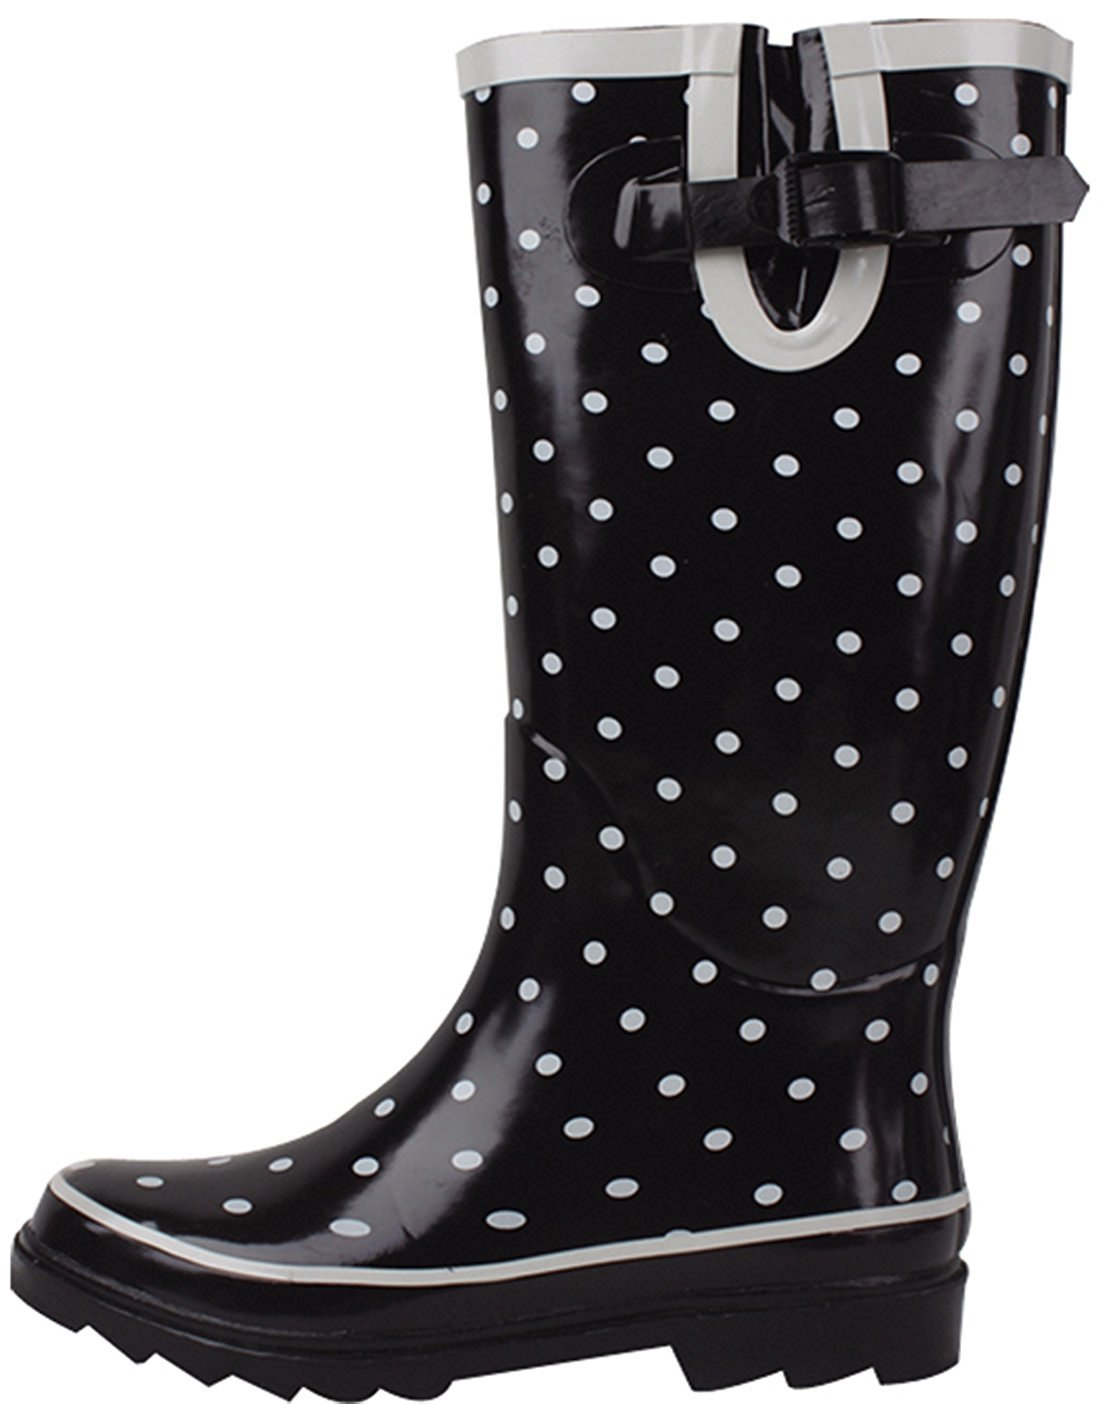 Women's Rain Boots Adjustable Buckle Mid Calf Festival Wellies Rubber Knee High Snow Shoes Multiple Styles (6 B(M) US, Black Polka Dots)